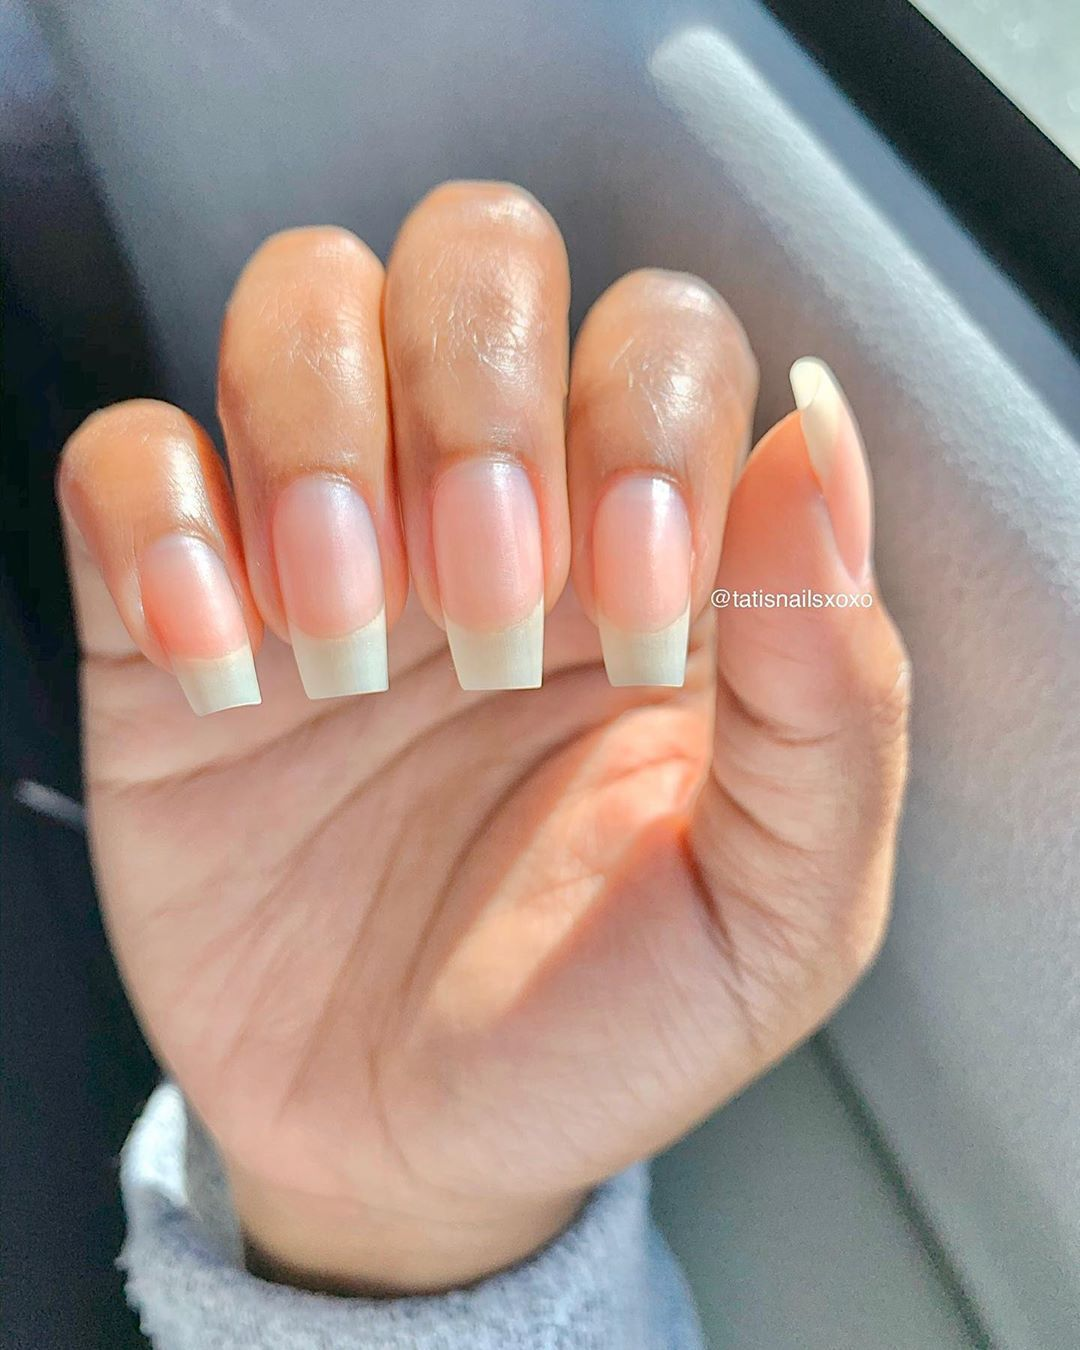 Tati S Nails Xoxo Llc On Instagram Comment And Ask Me Any Nail Question You Want I Get Aske In 2020 Natural Nails Manicure Long Natural Nails Natural Nails